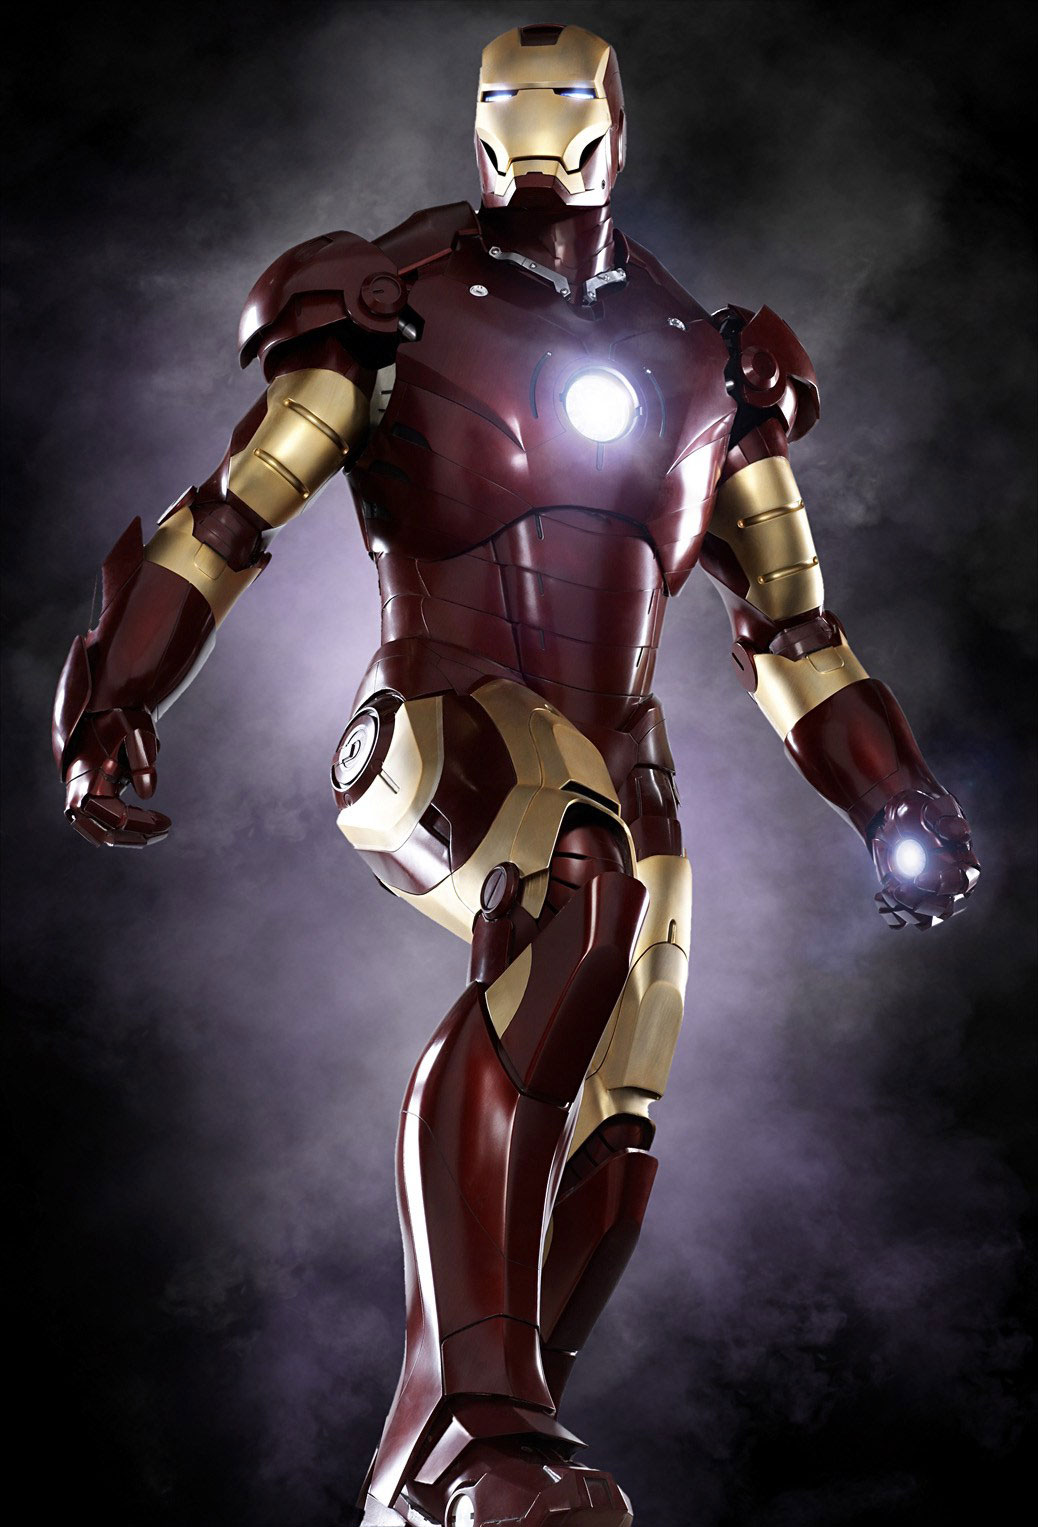 Iron Man muscle costumes | Iron Man kid costumes | Iron Man movie costumes. Many of the greatest comic book superheroes ever known have come out of Marvel Comics, Iron Man being one of them. First appearing in comic books in , eventually the Iron Man saga was made into a feature film in